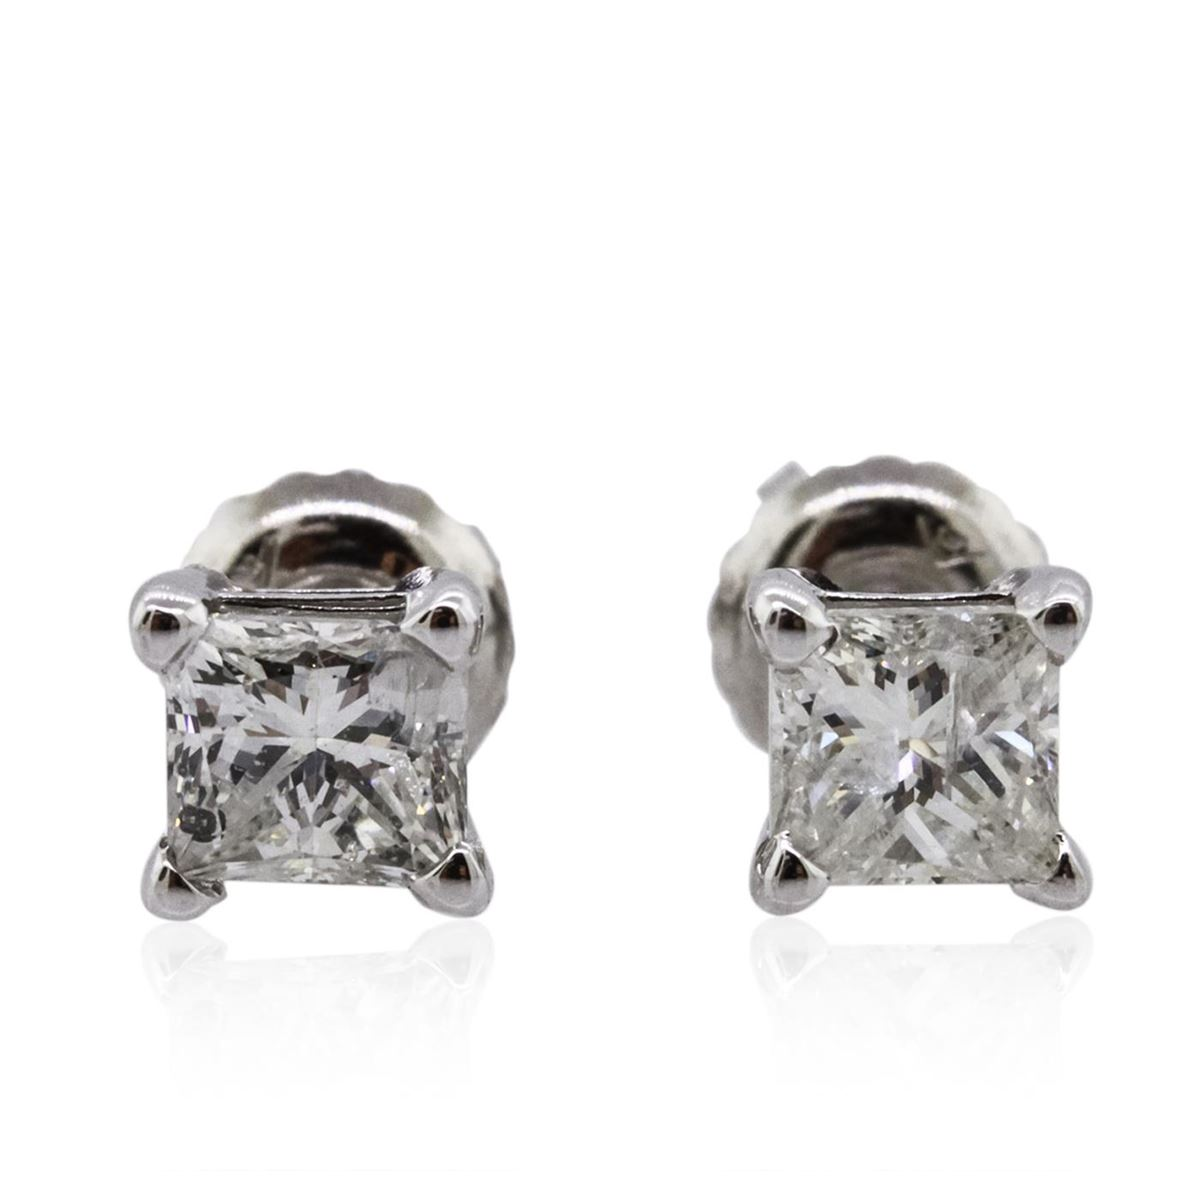 14KT White Gold 1.11ctw Diamond Solitaire Earrings